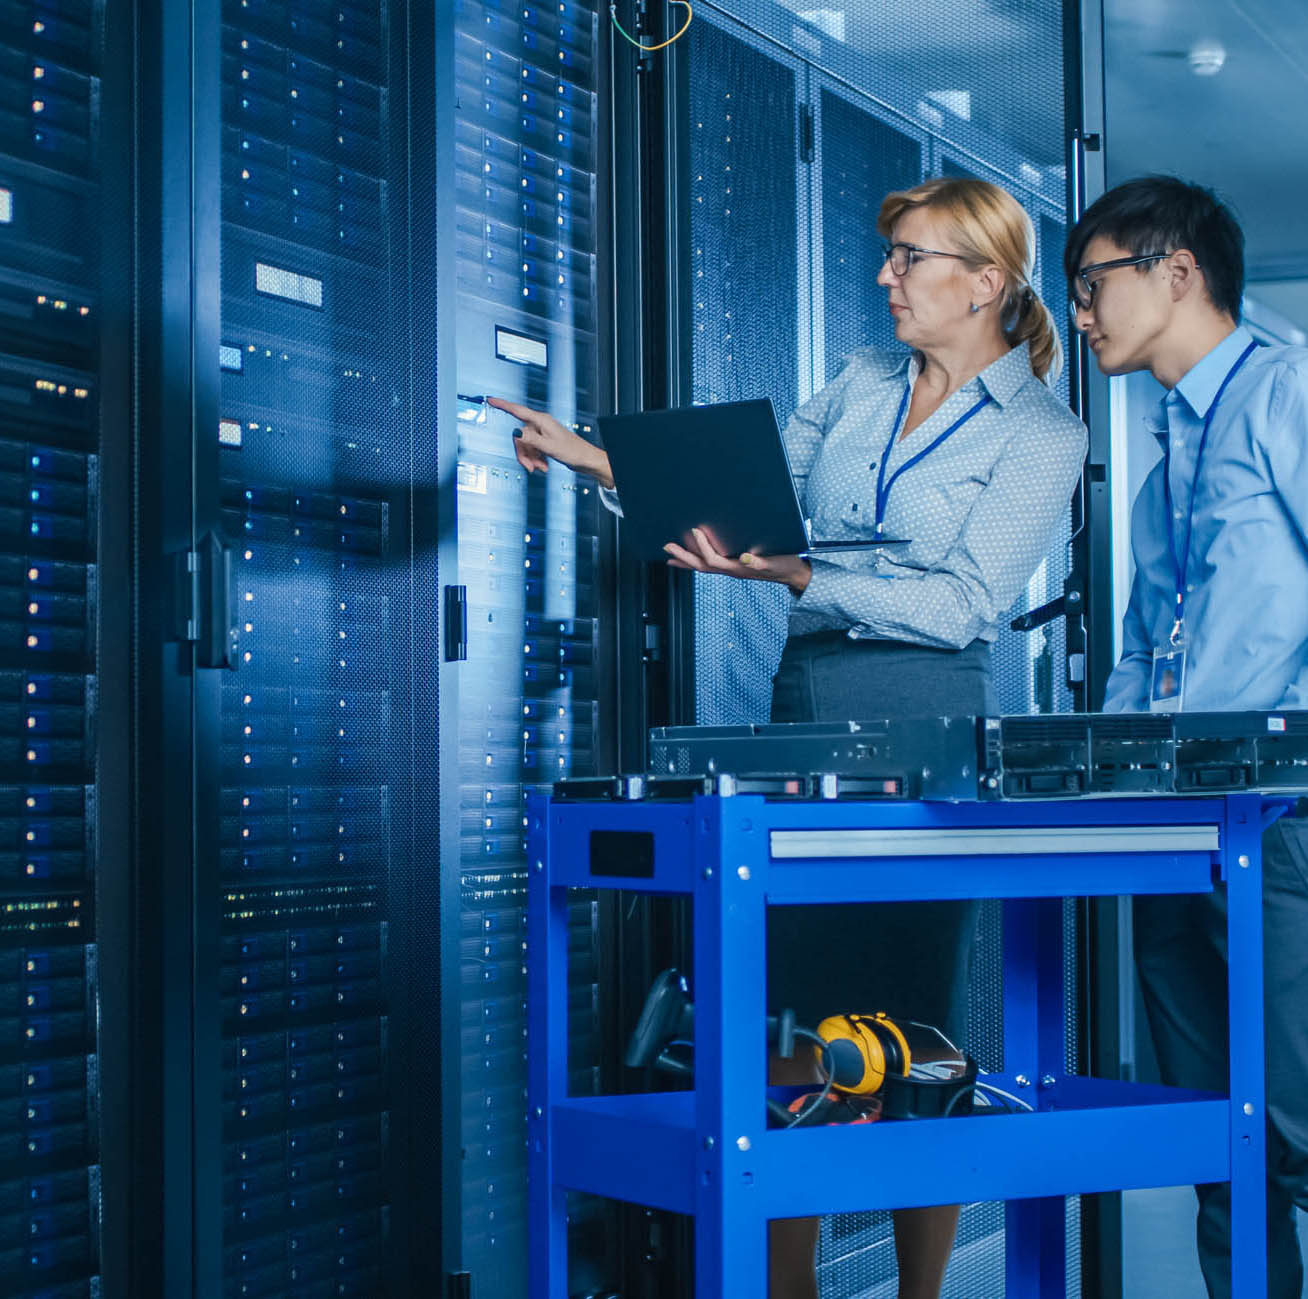 In the Modern Data Center: Engineer and IT Specialist Work with Server Racks, on a Pushcart Equipment for Installing New Hardware. Specialists Doing Maintenance and Diagnostics of the Database.